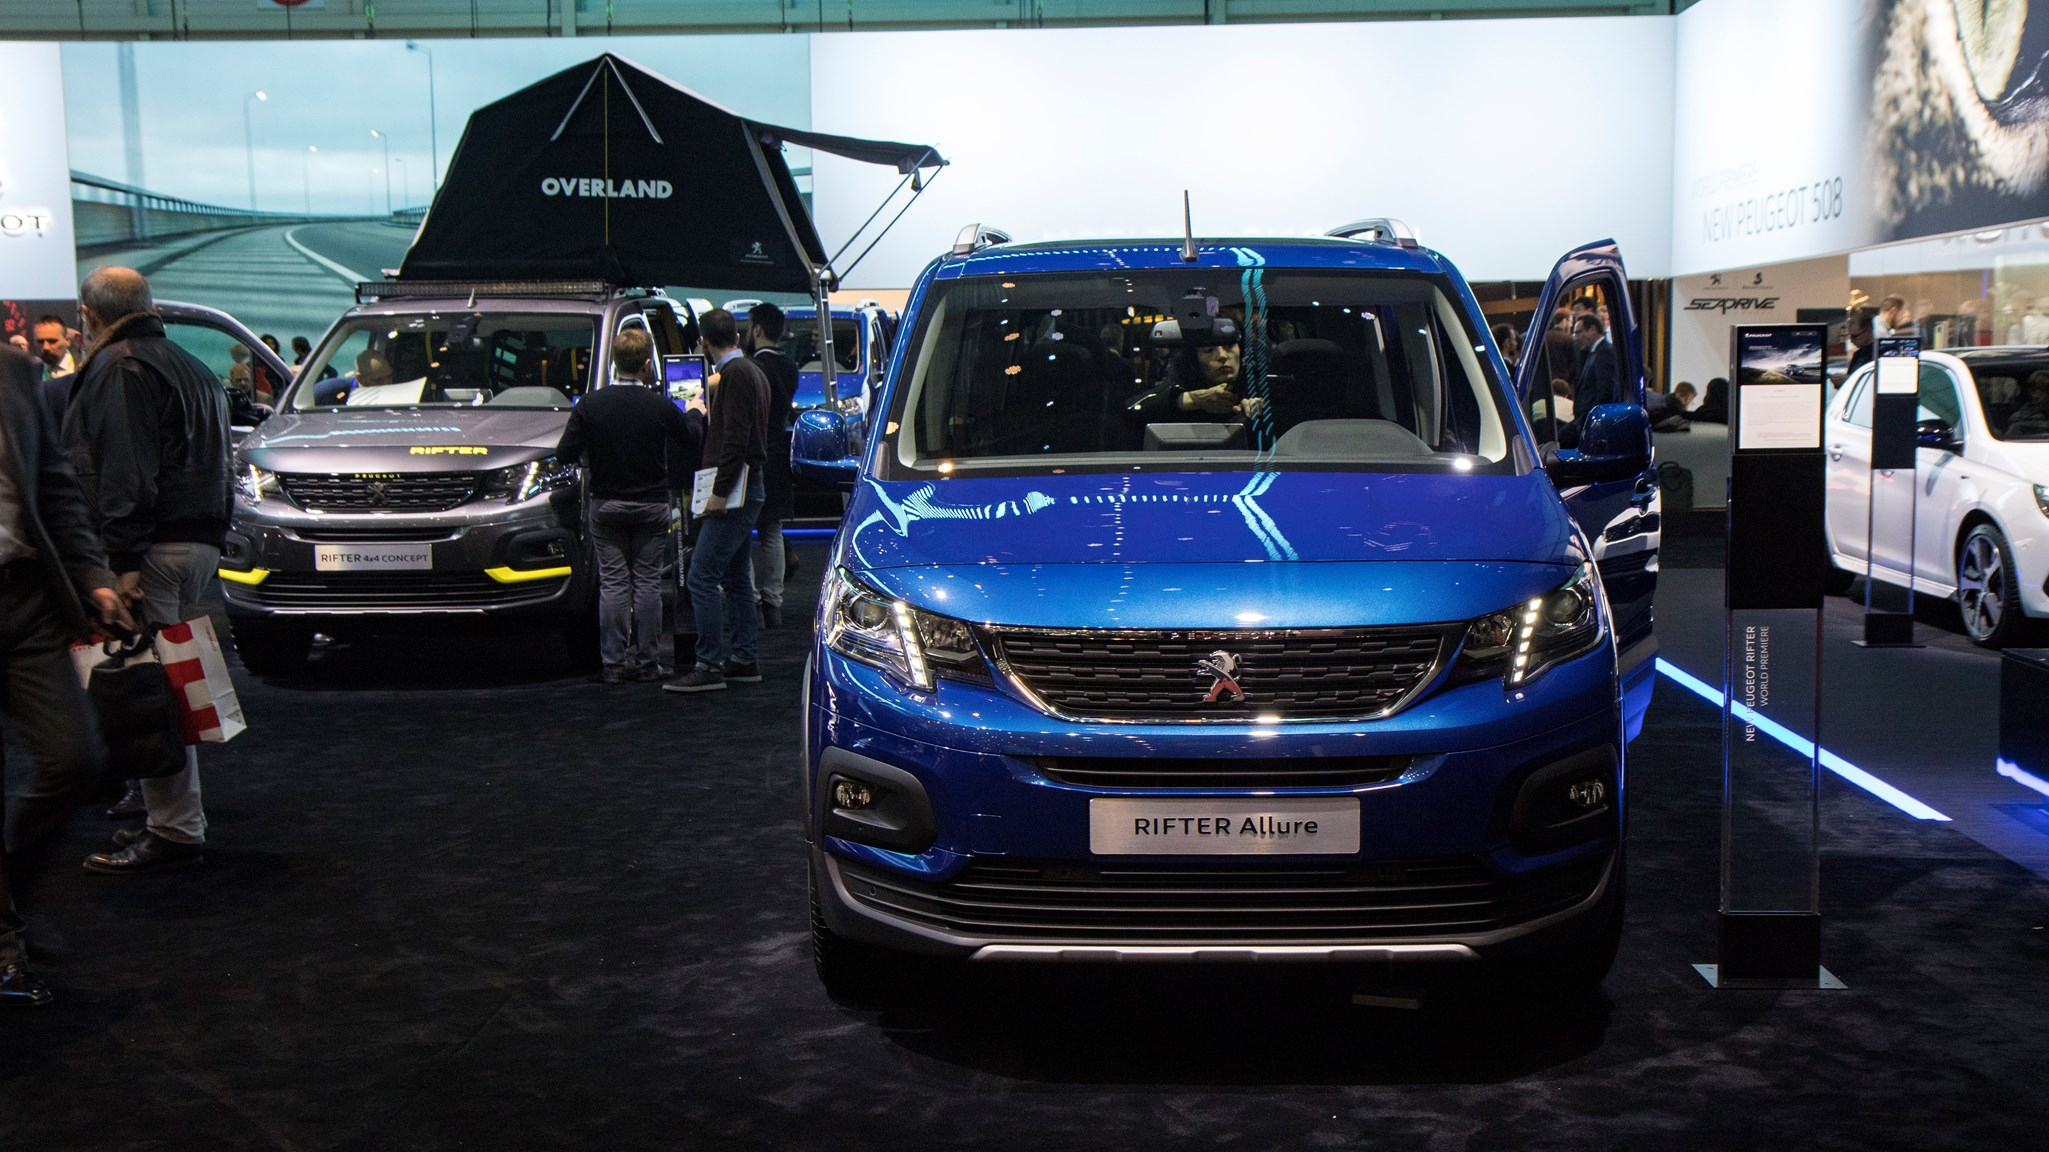 peugeot rifter uk price of mpv revealed car magazine. Black Bedroom Furniture Sets. Home Design Ideas